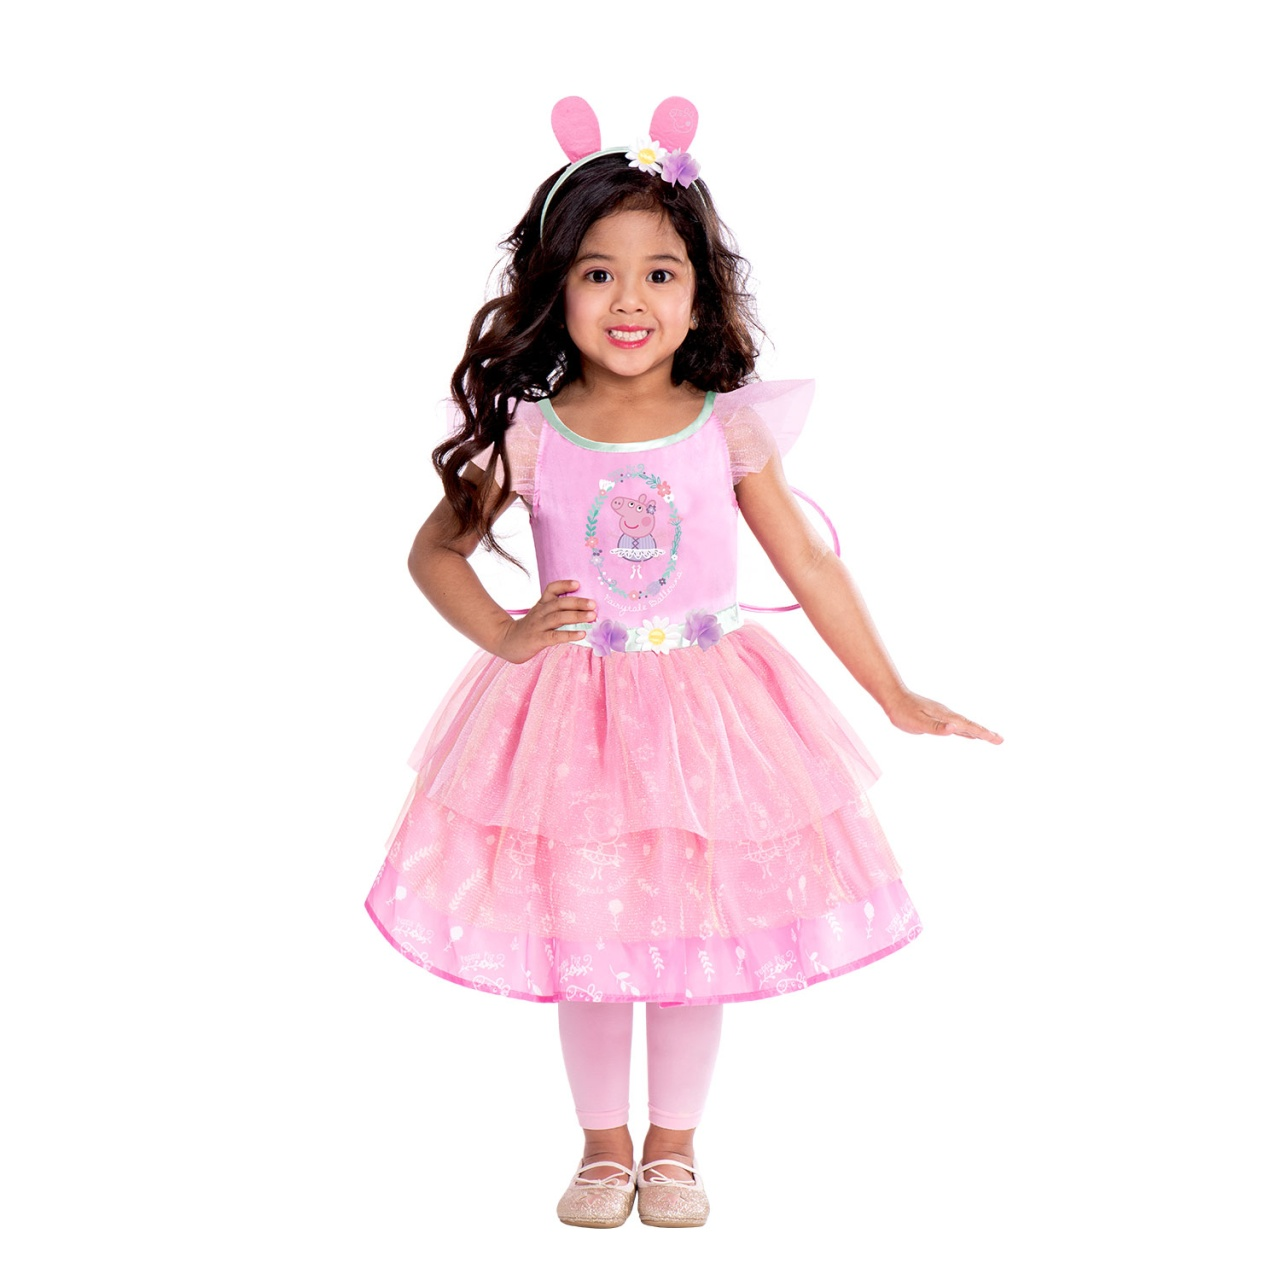 Kostüm Peppa Wutz Fairy Dress 2 - 3 Jahre